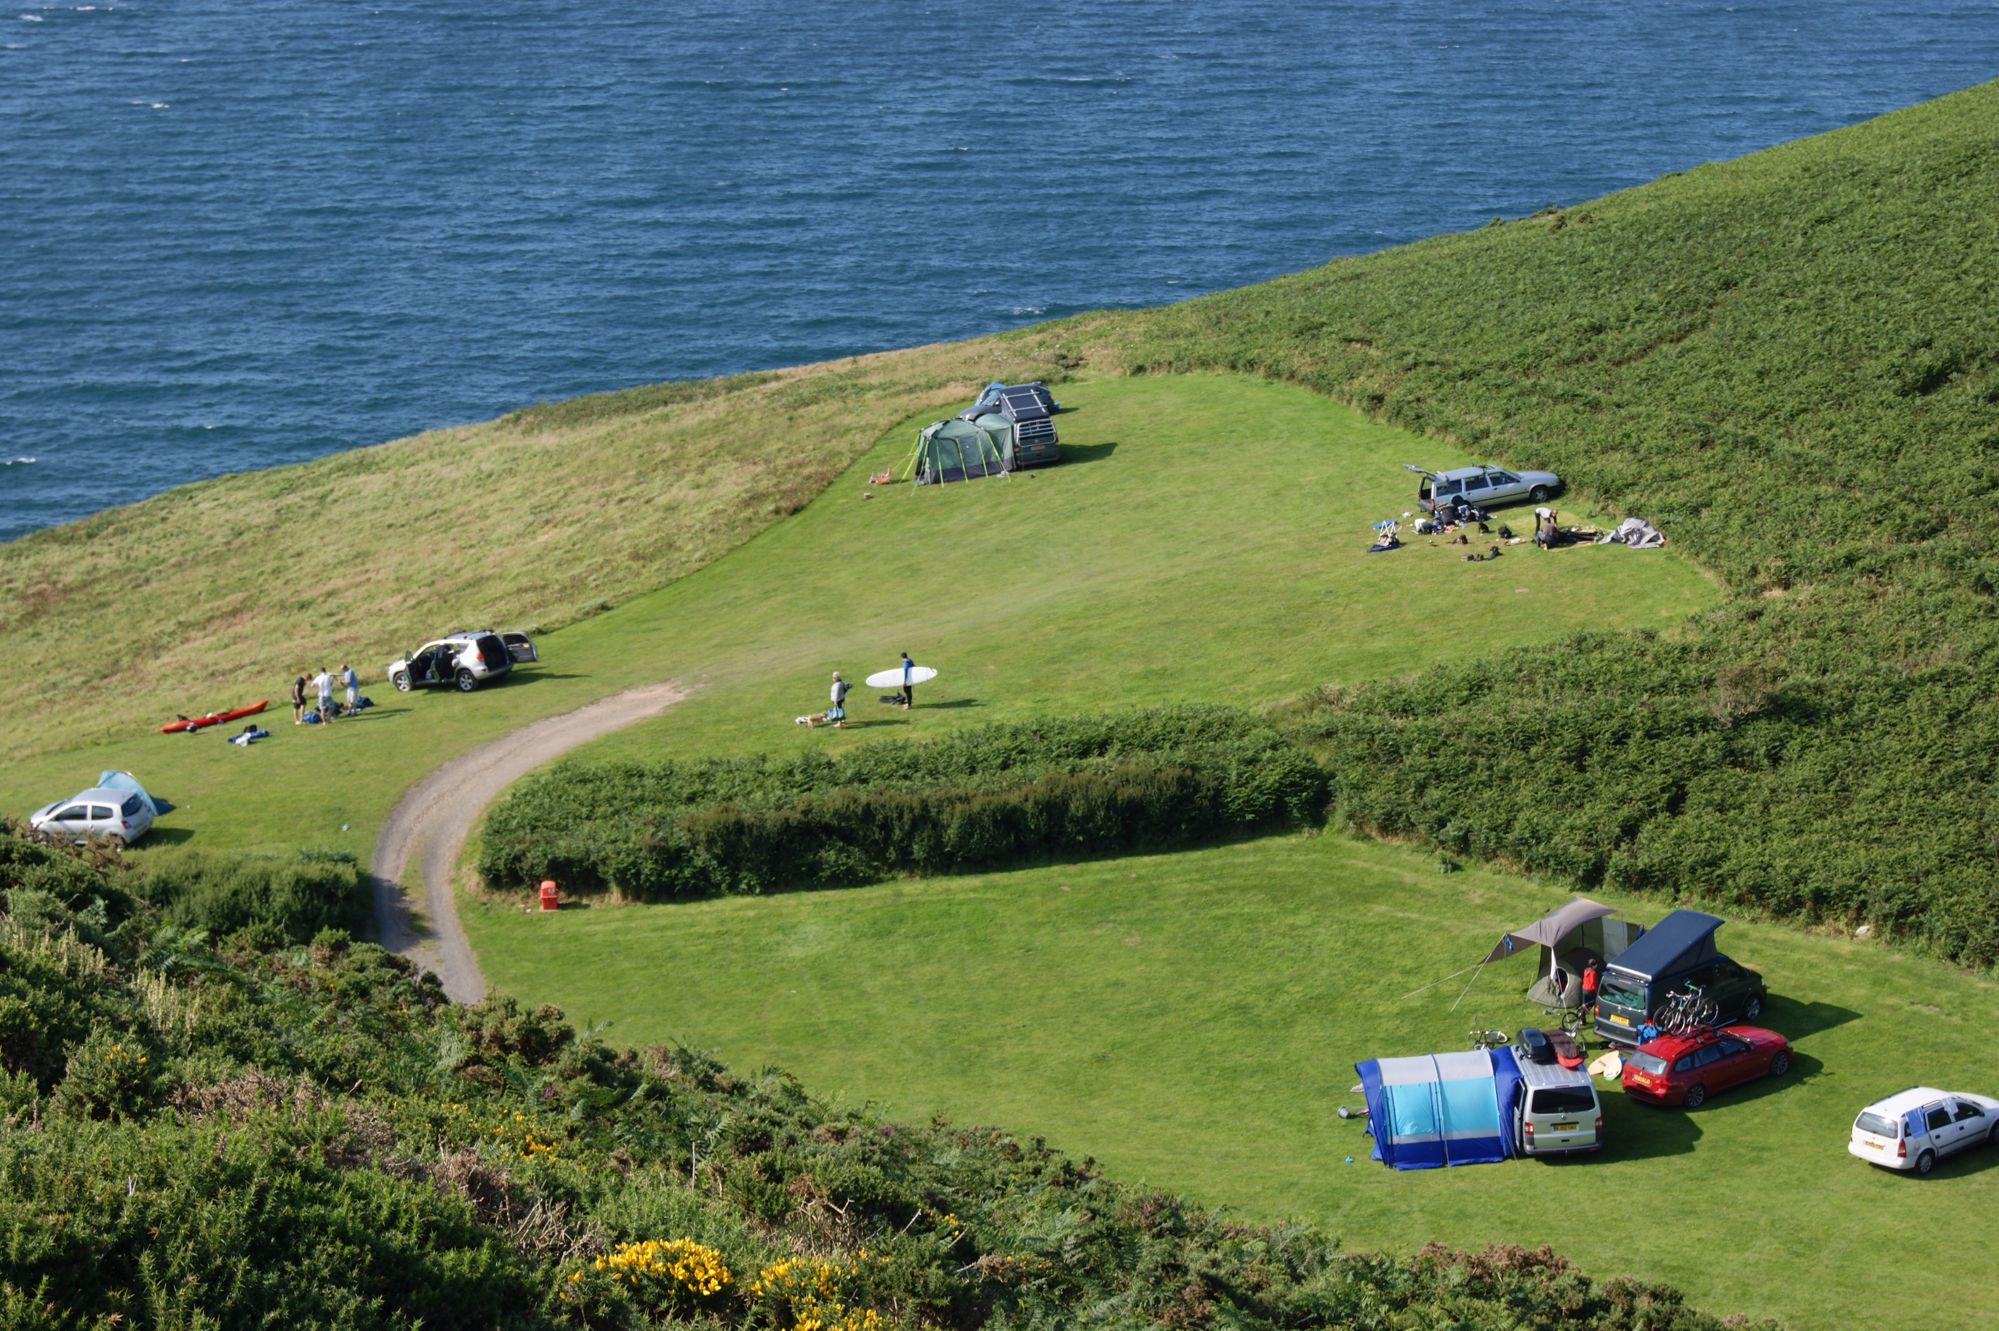 Pwllheli Camping | Campsites in Pwllheli, North Wales